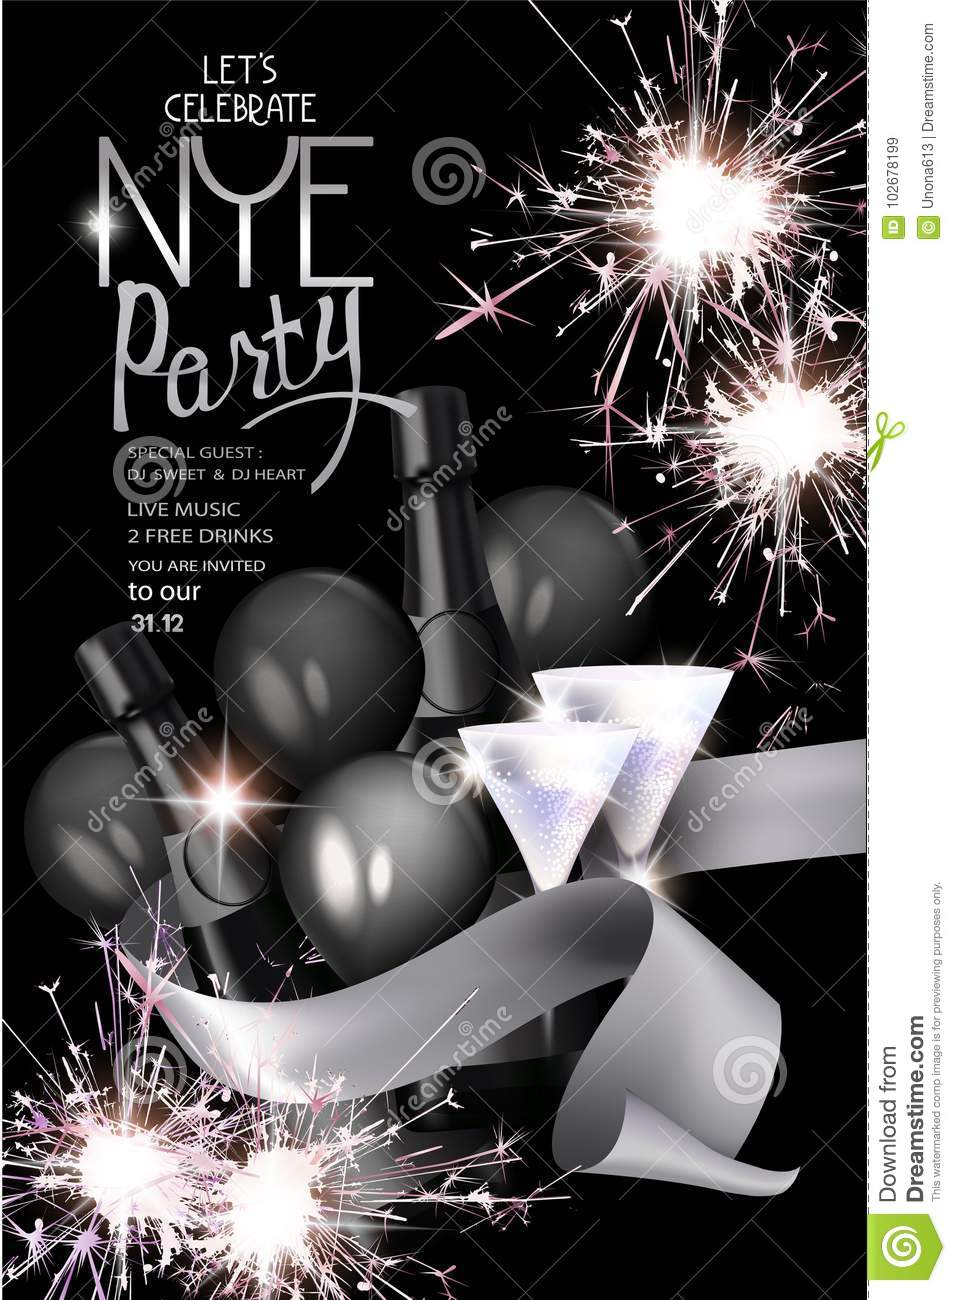 new year eve party invitation card with sparklers bottle of champagne ribbon and glasses